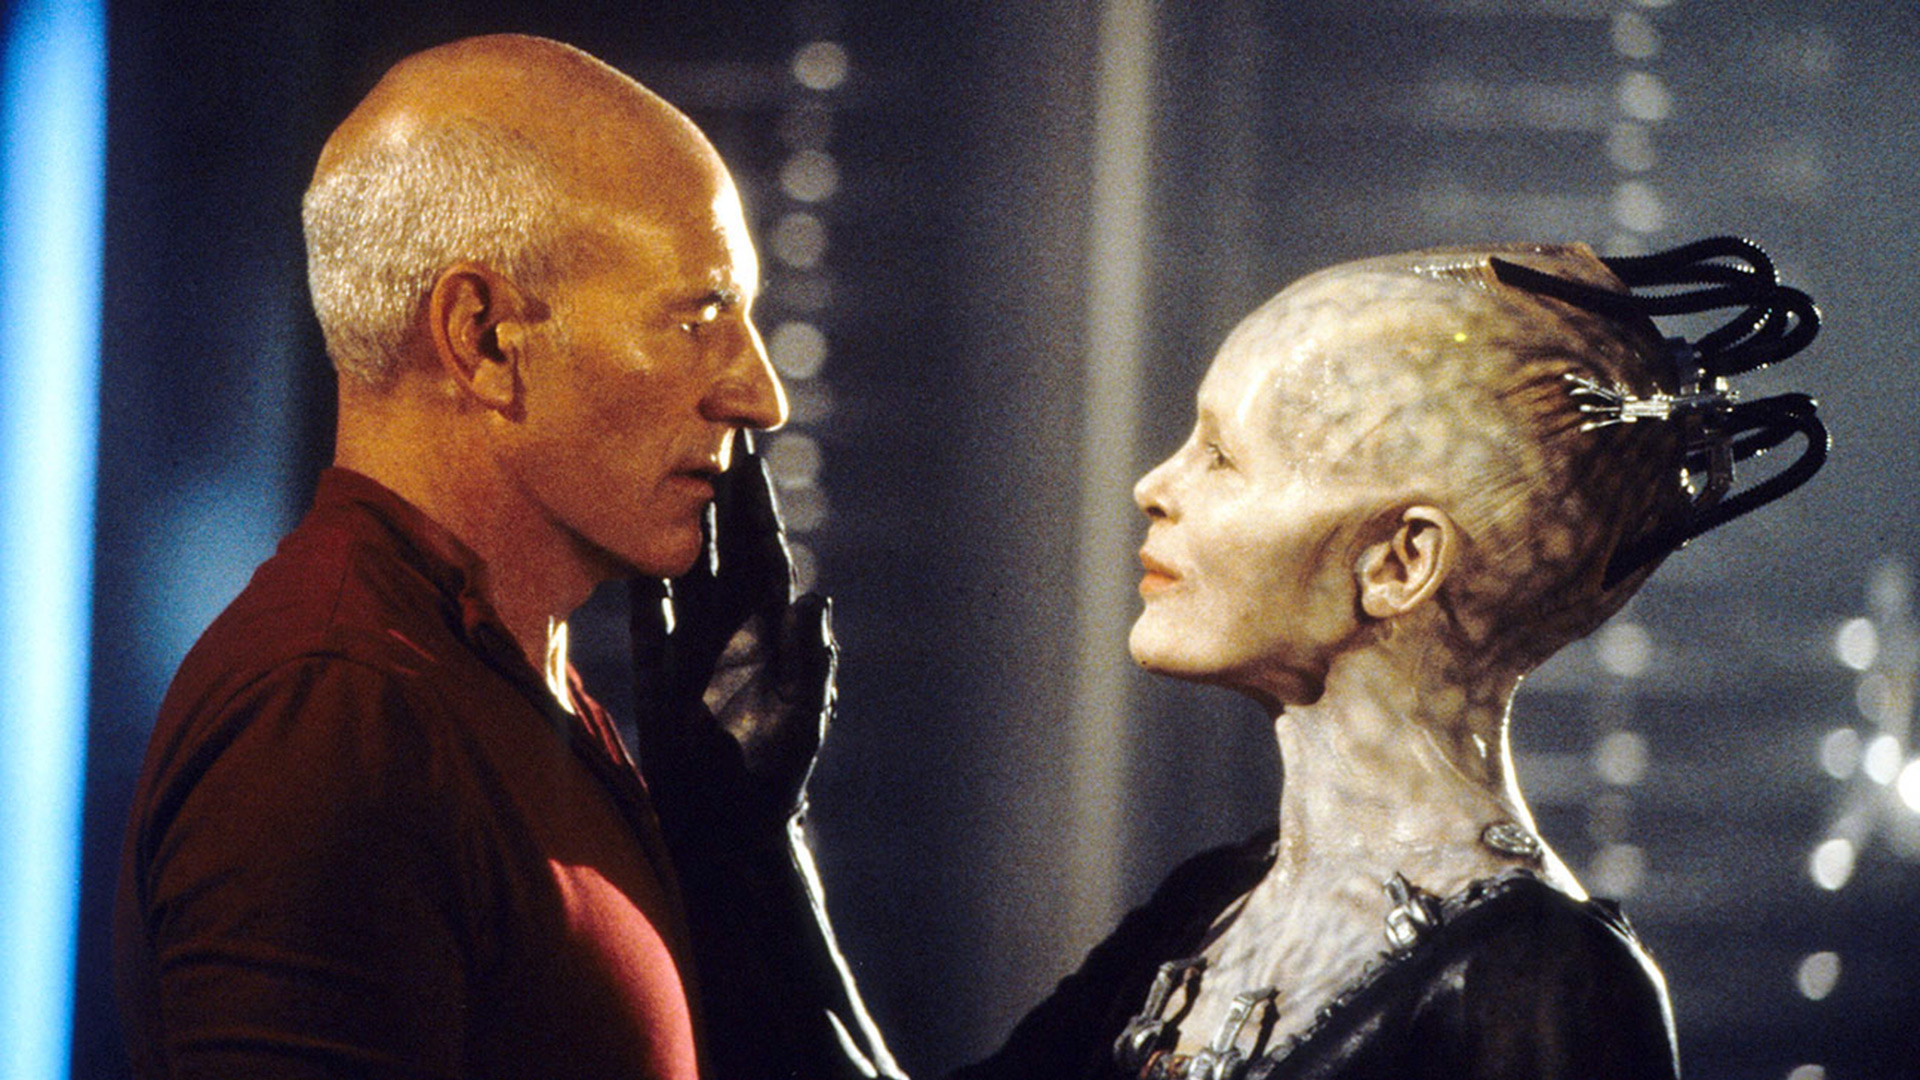 Stillframe Star Trek: First Contact, dirección Jonathan Frakes, 1996